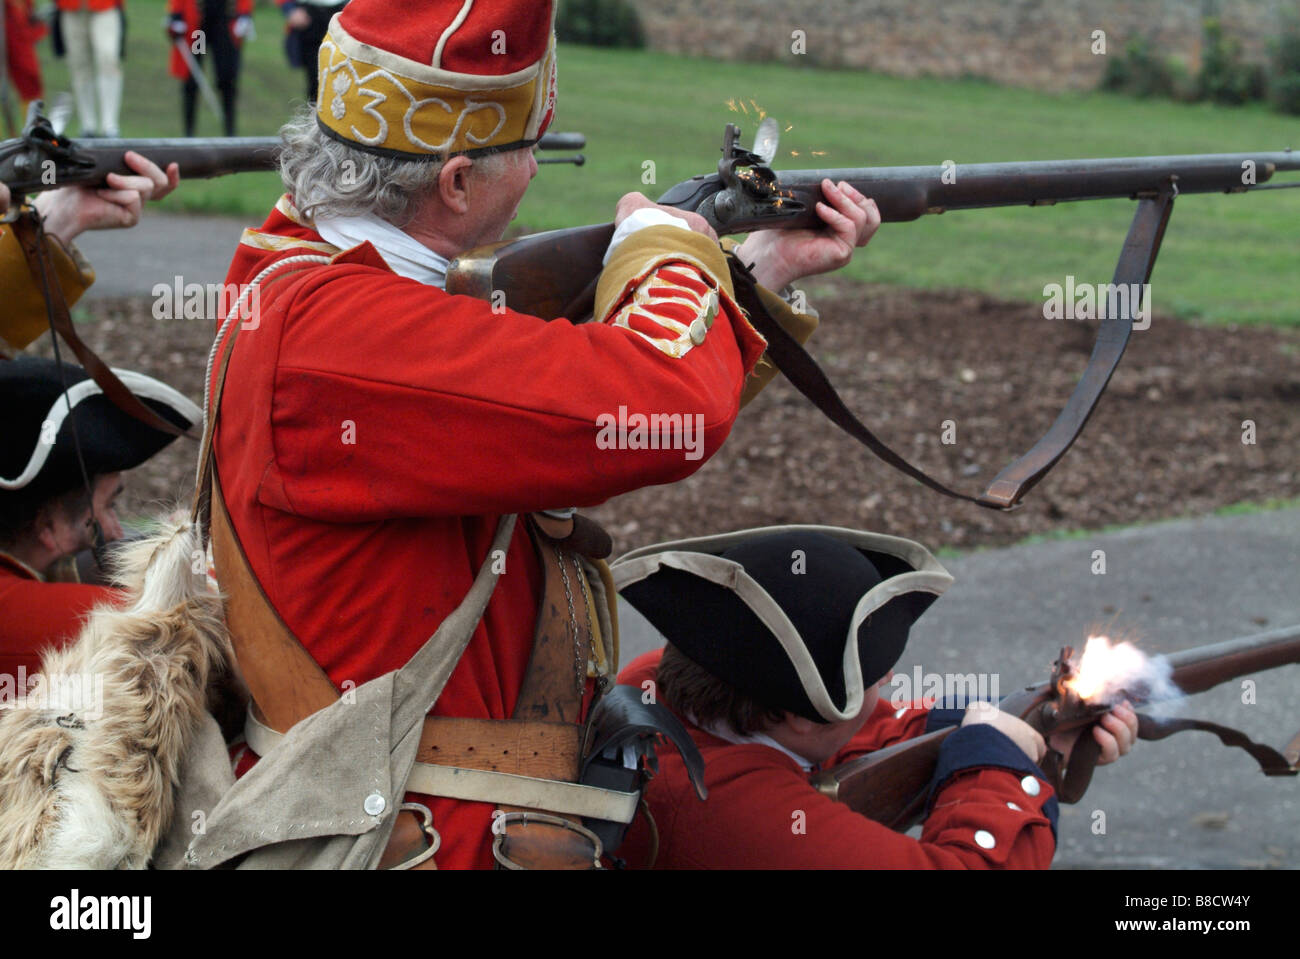 A demonstration of musket firing at the 2008 re-enactment of the Battle of Prestonpans, Scotland. Stock Photo